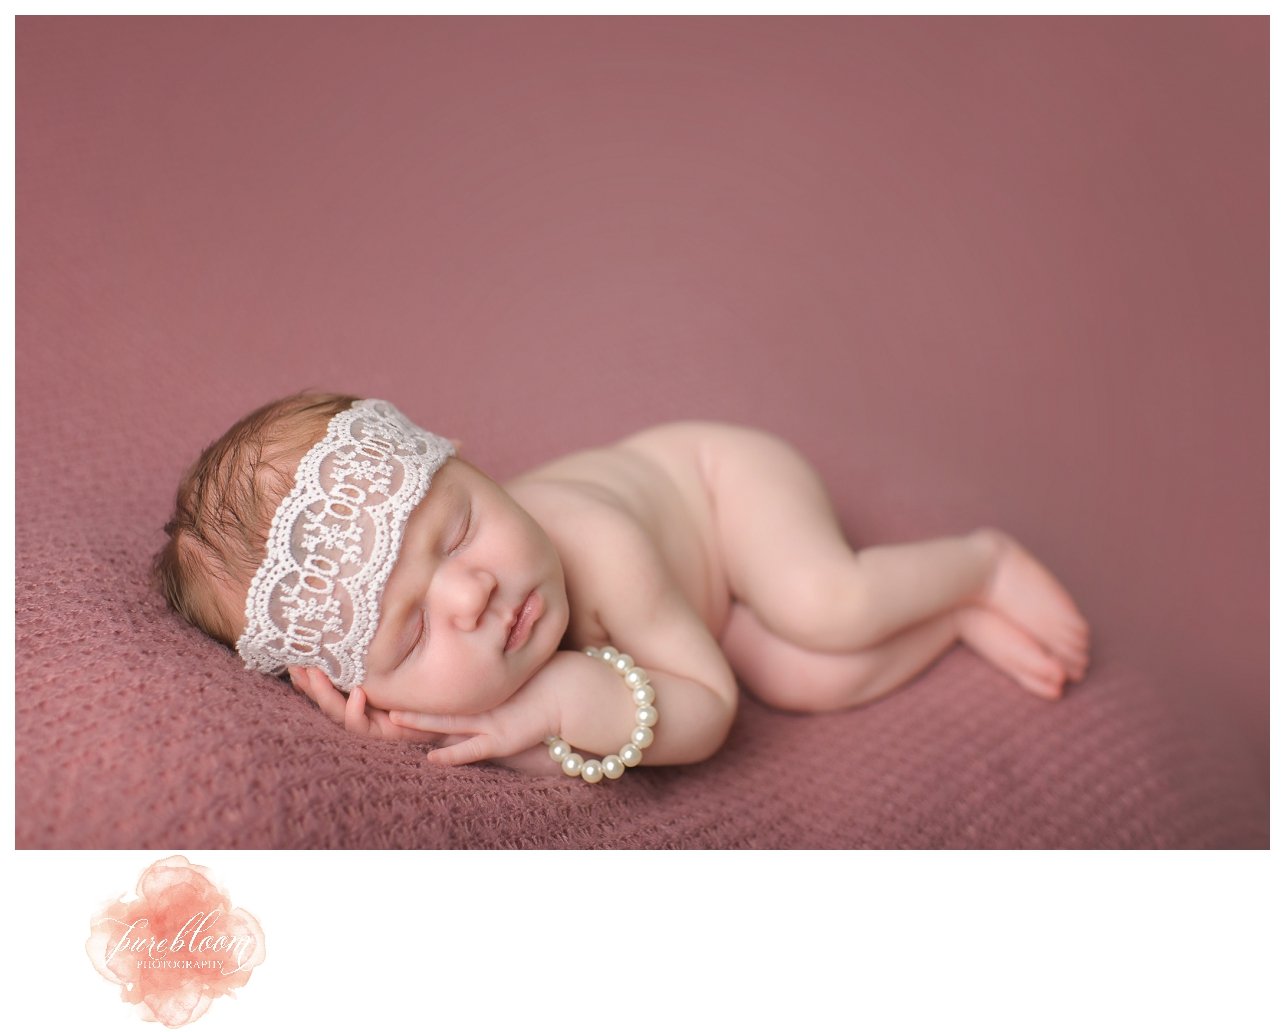 Baby Caroline | Tampa Newborn Photographer | Pure Bloom Photography